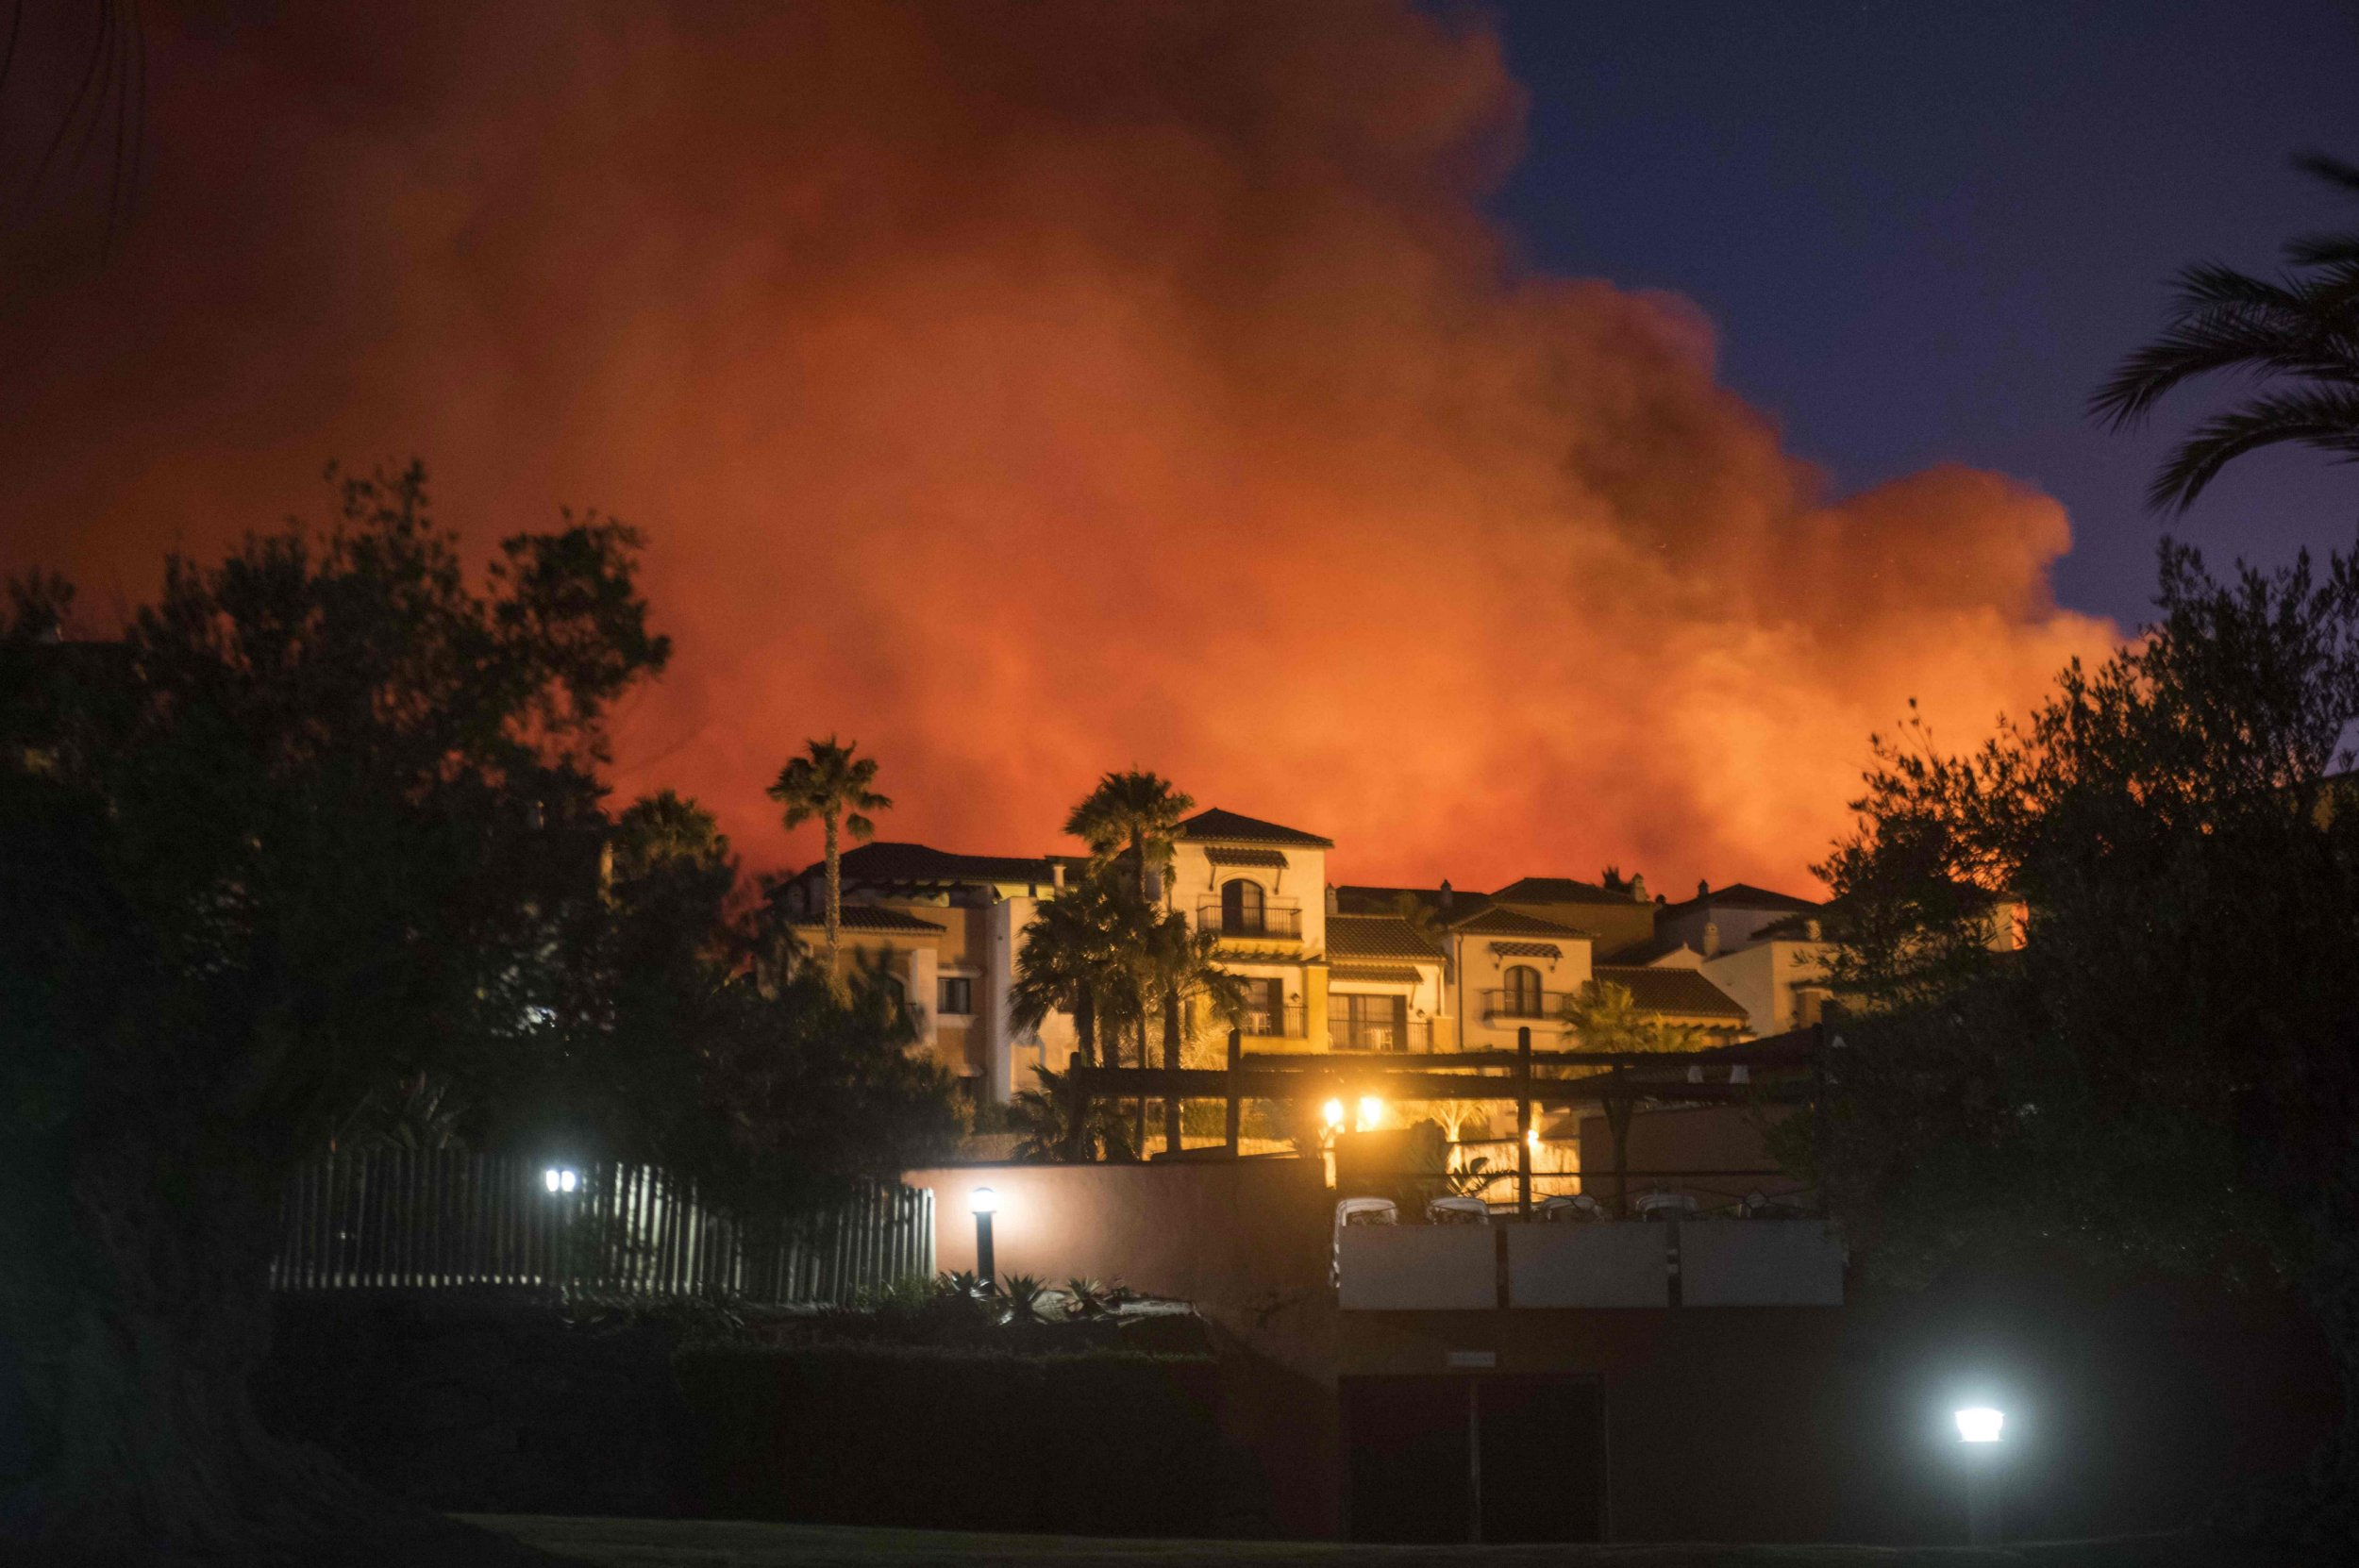 TOPSHOT - A wildfire threatens Hotel Aldiana in the seaside resort of Alcaidesa, near Sotogrande, province of Cadiz Spain, on July 12, 2016. About 420 guests staying at the hotel, mostly German and British, were forced to take shelter at a nearby sports complex. / AFP PHOTO / Marcos MorenoMARCOS MORENO/AFP/Getty Images